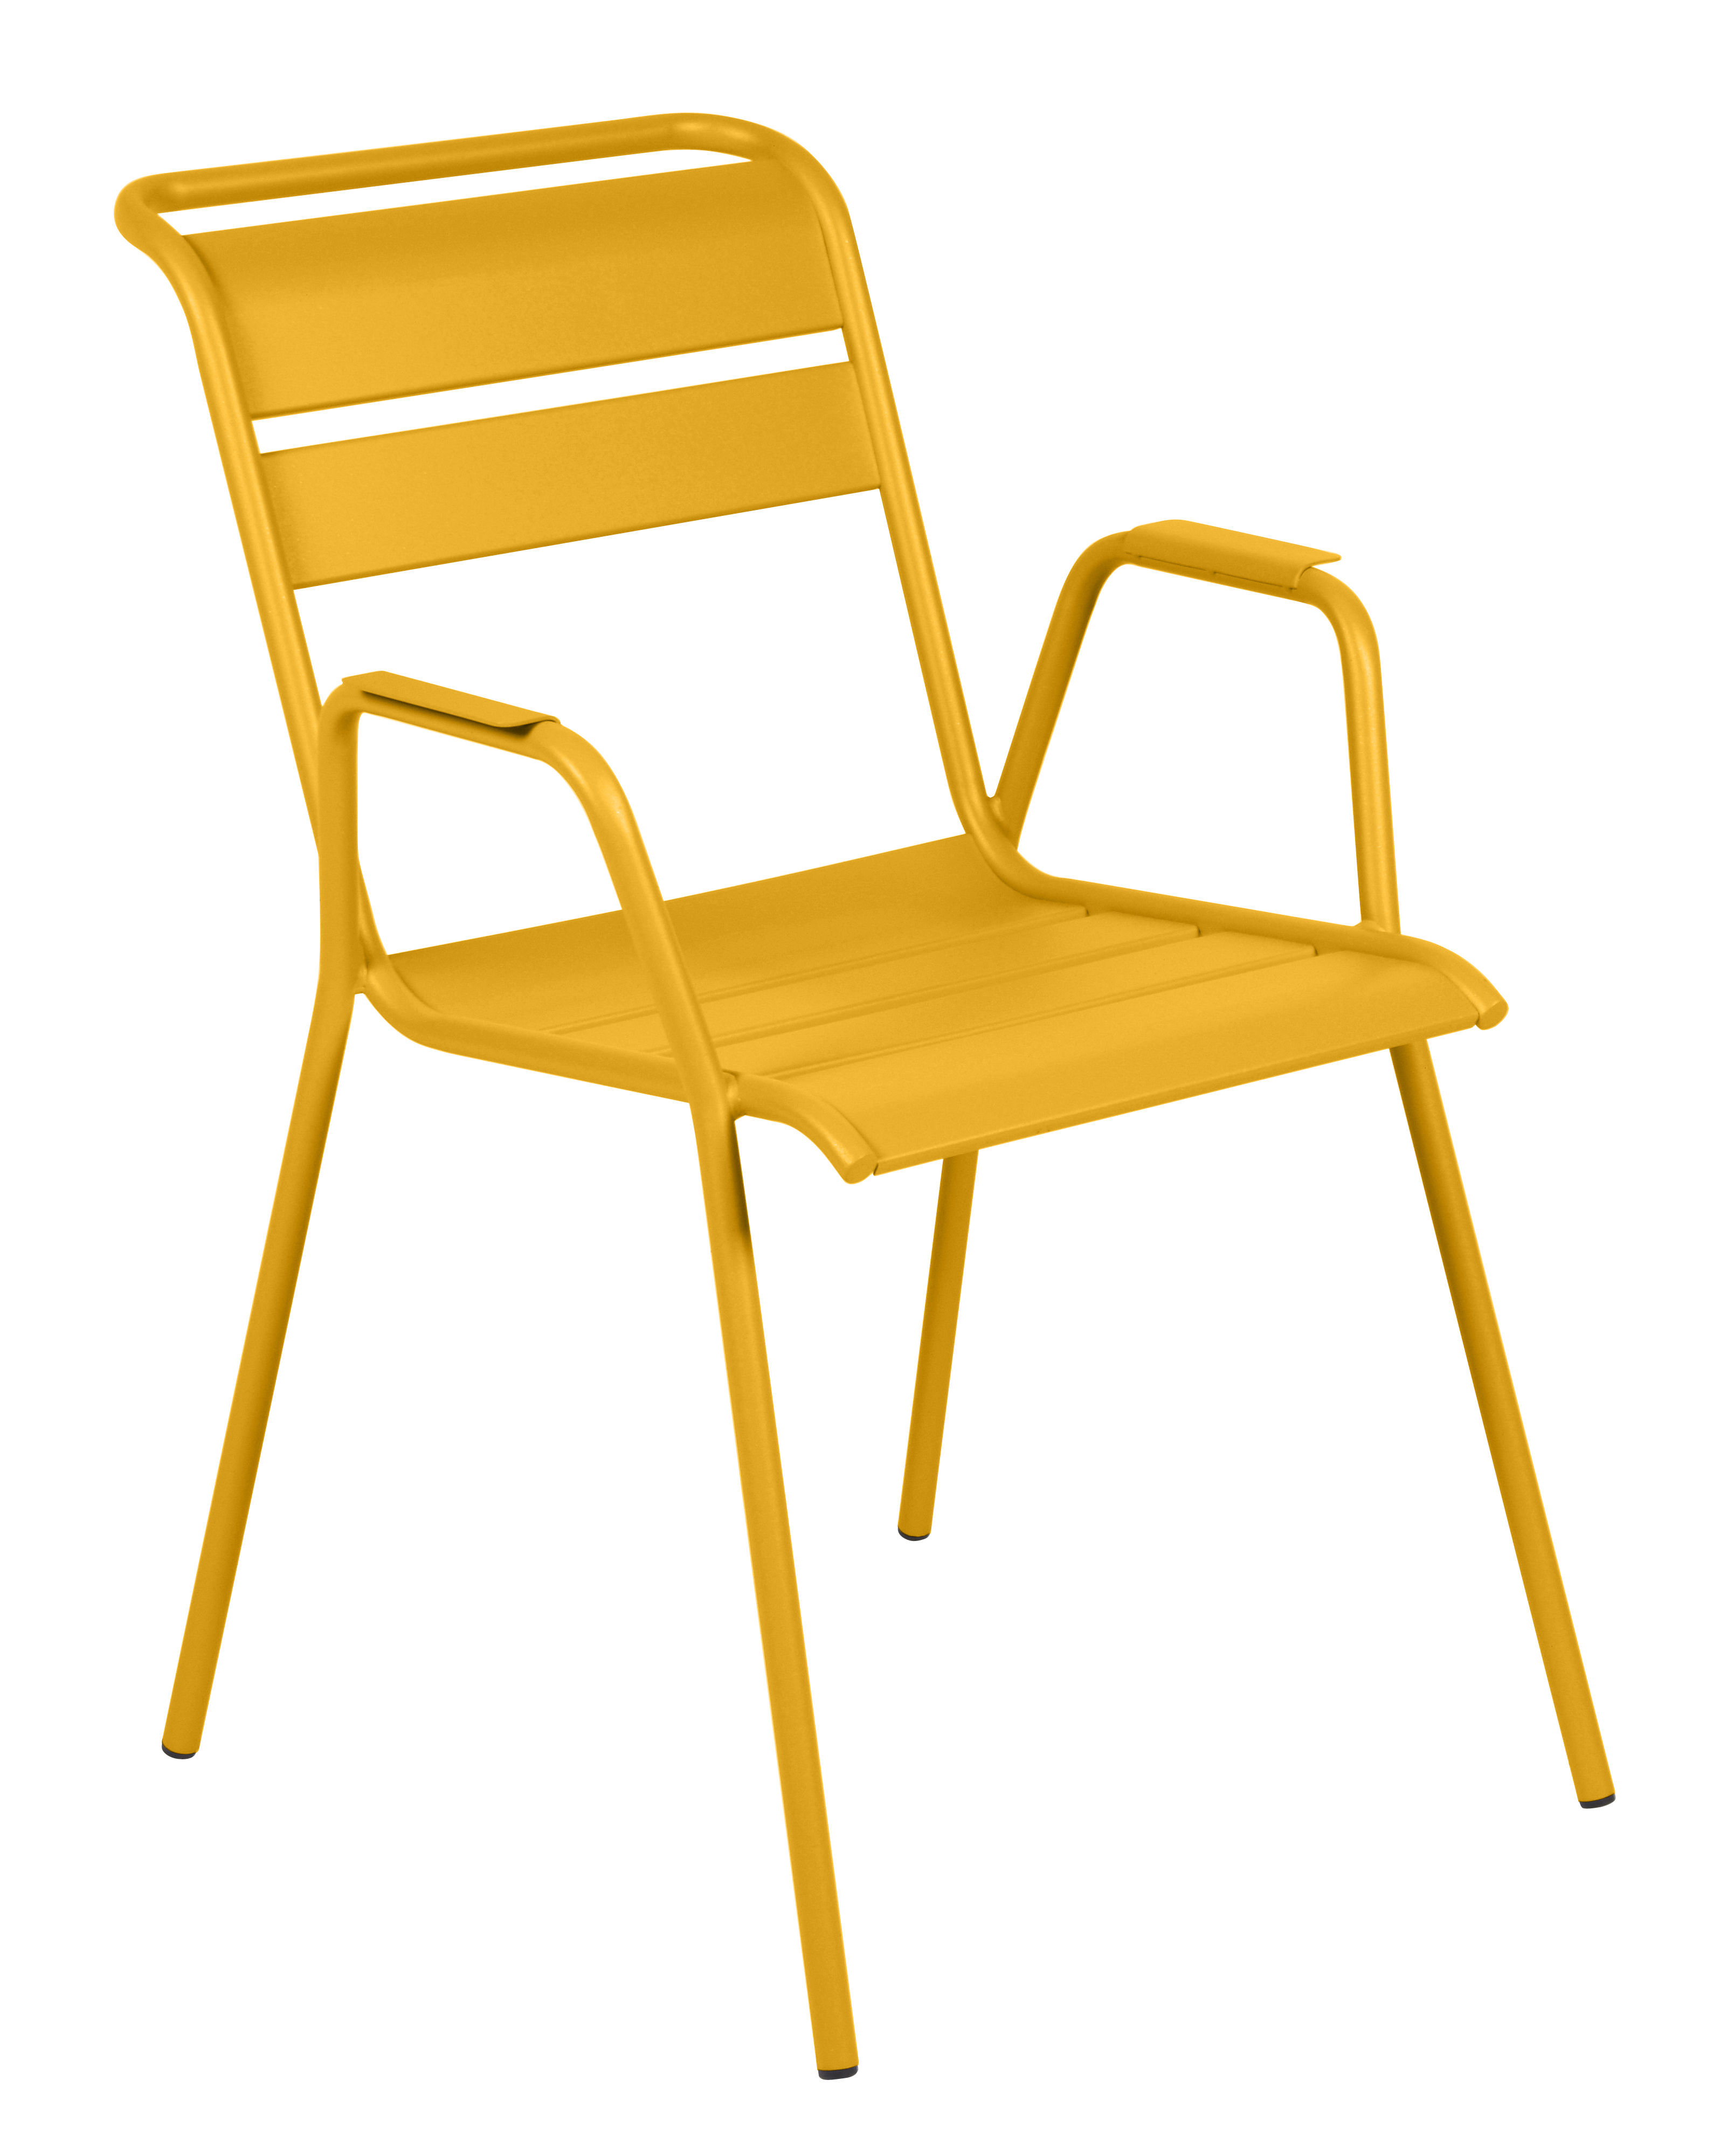 Furniture - Chairs - Monceau Stackable armchair - / Metal by Fermob - Honey - Painted steel